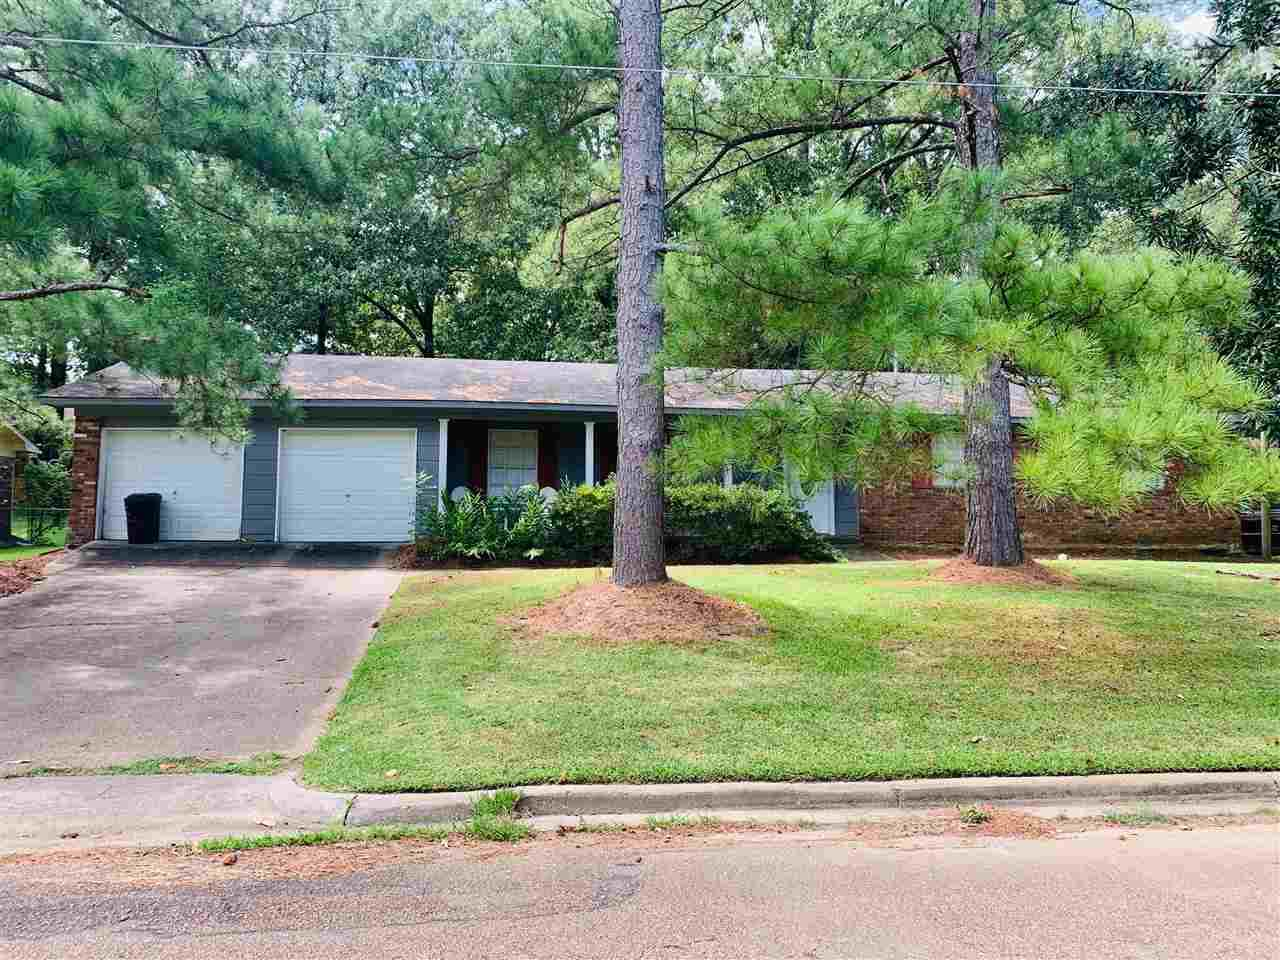 902 Live Oak Dr - Photo 1